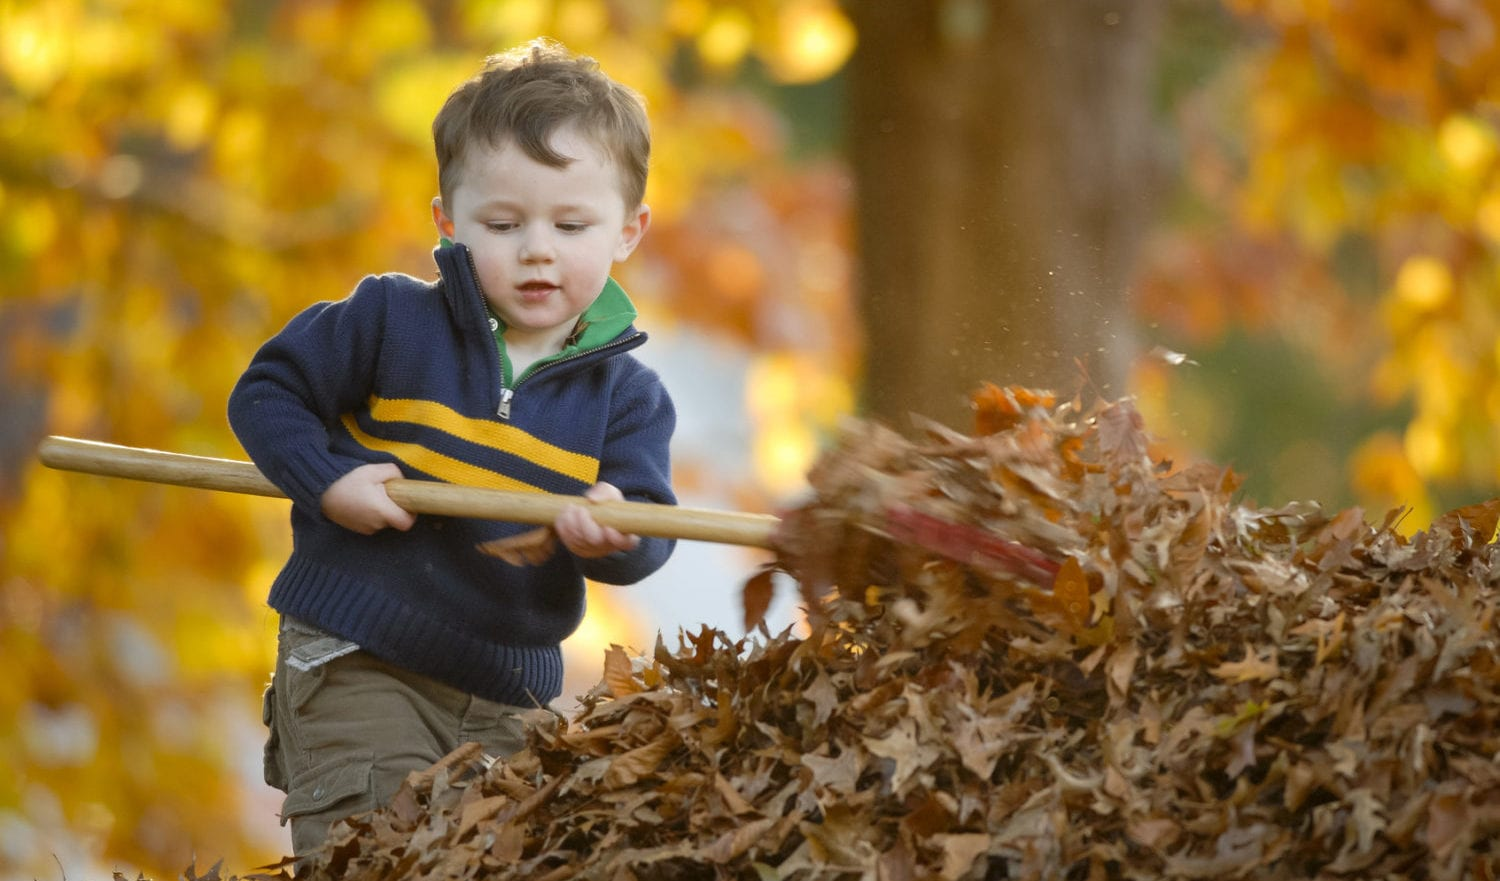 Young boy waking leaves in the fall - Stock Photo